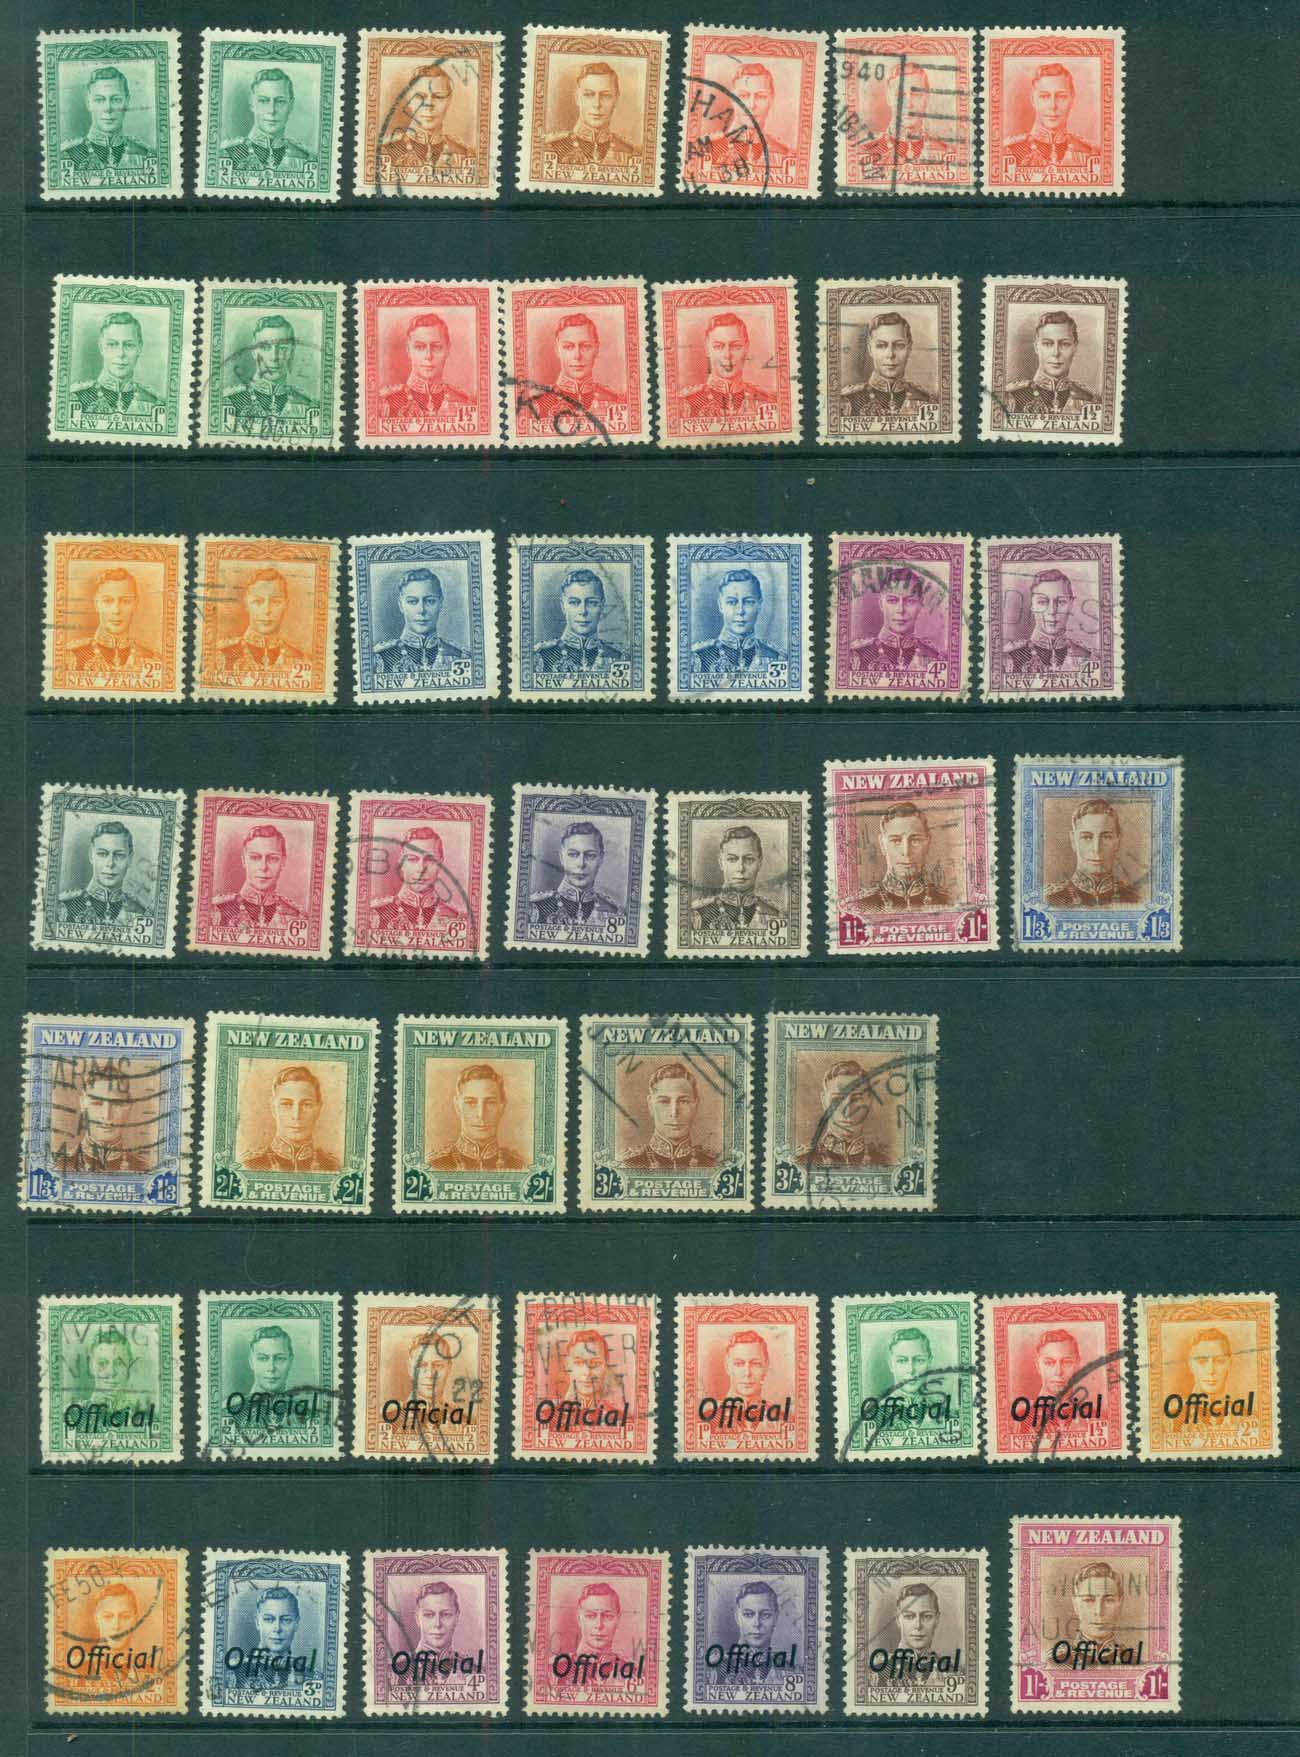 New Zealand 1938-47 KGVI Assorted inc Officials FU lot71545